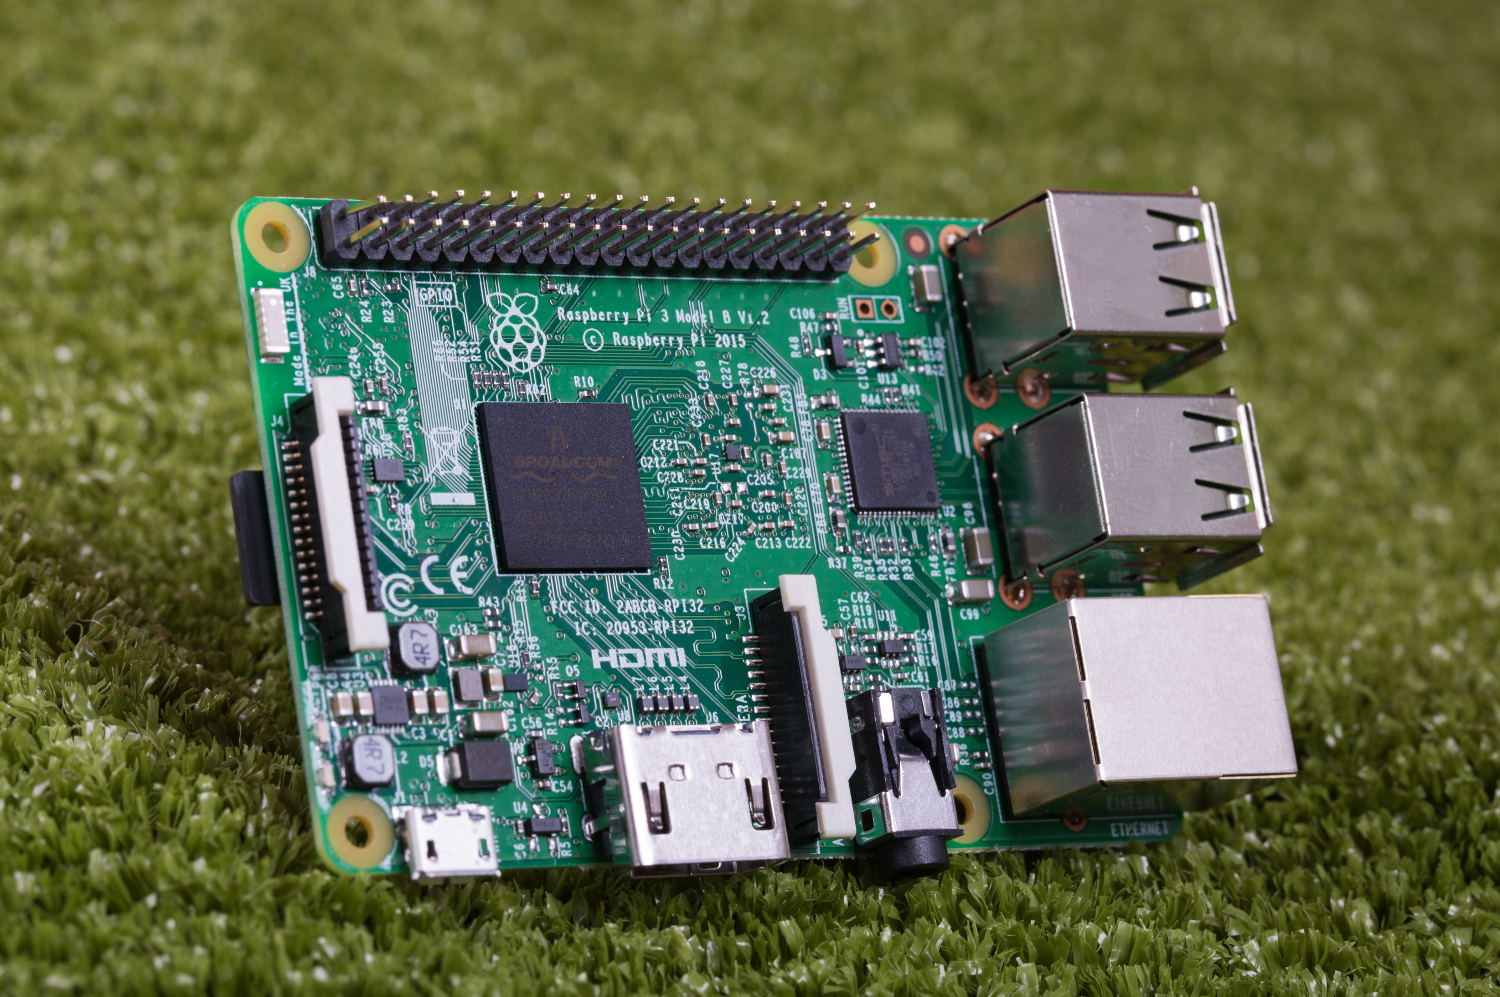 Pi 3 makes 'ultimate education list' for engineers - The